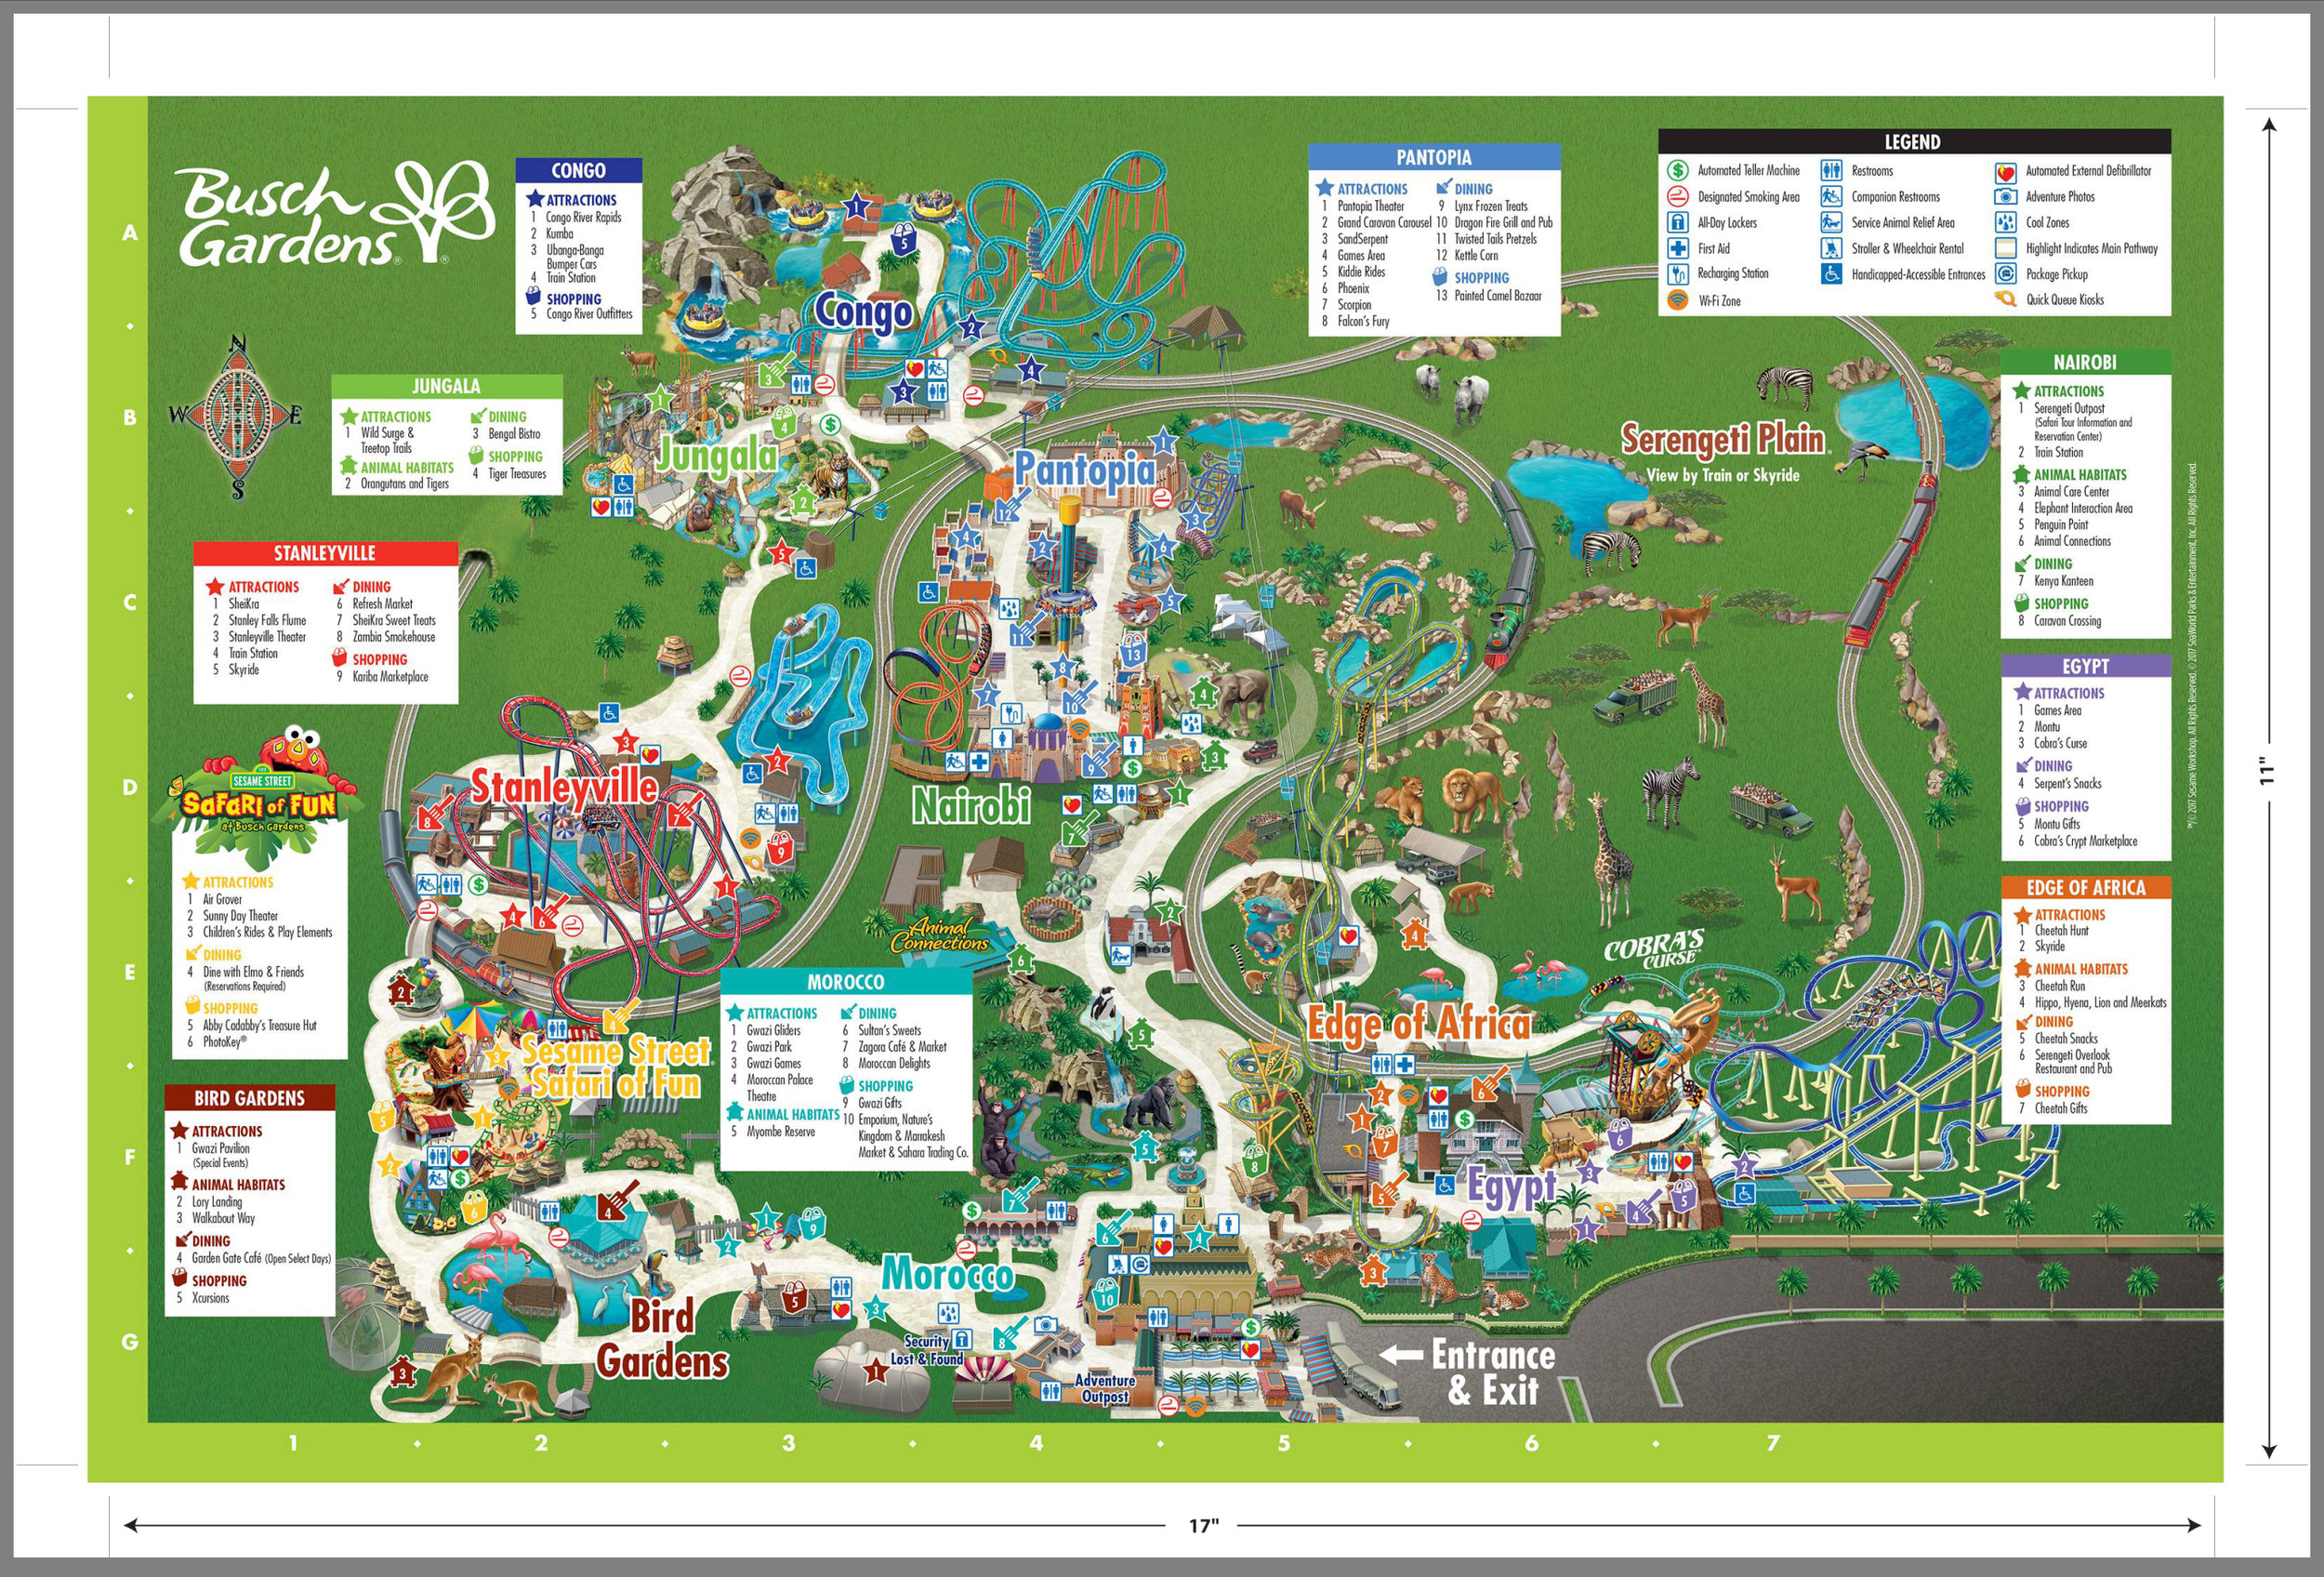 Tips for Planning a Trip to Busch Gardens Tampa with Kids ... Printable Map Of Busch Gardens on printable map of hollywood studios, printable map of downtown orlando, printable map of disney magic kingdom, printable map of six flags great adventure, printable map of epcot center, printable map of colonial williamsburg, printable map of colonial parkway,